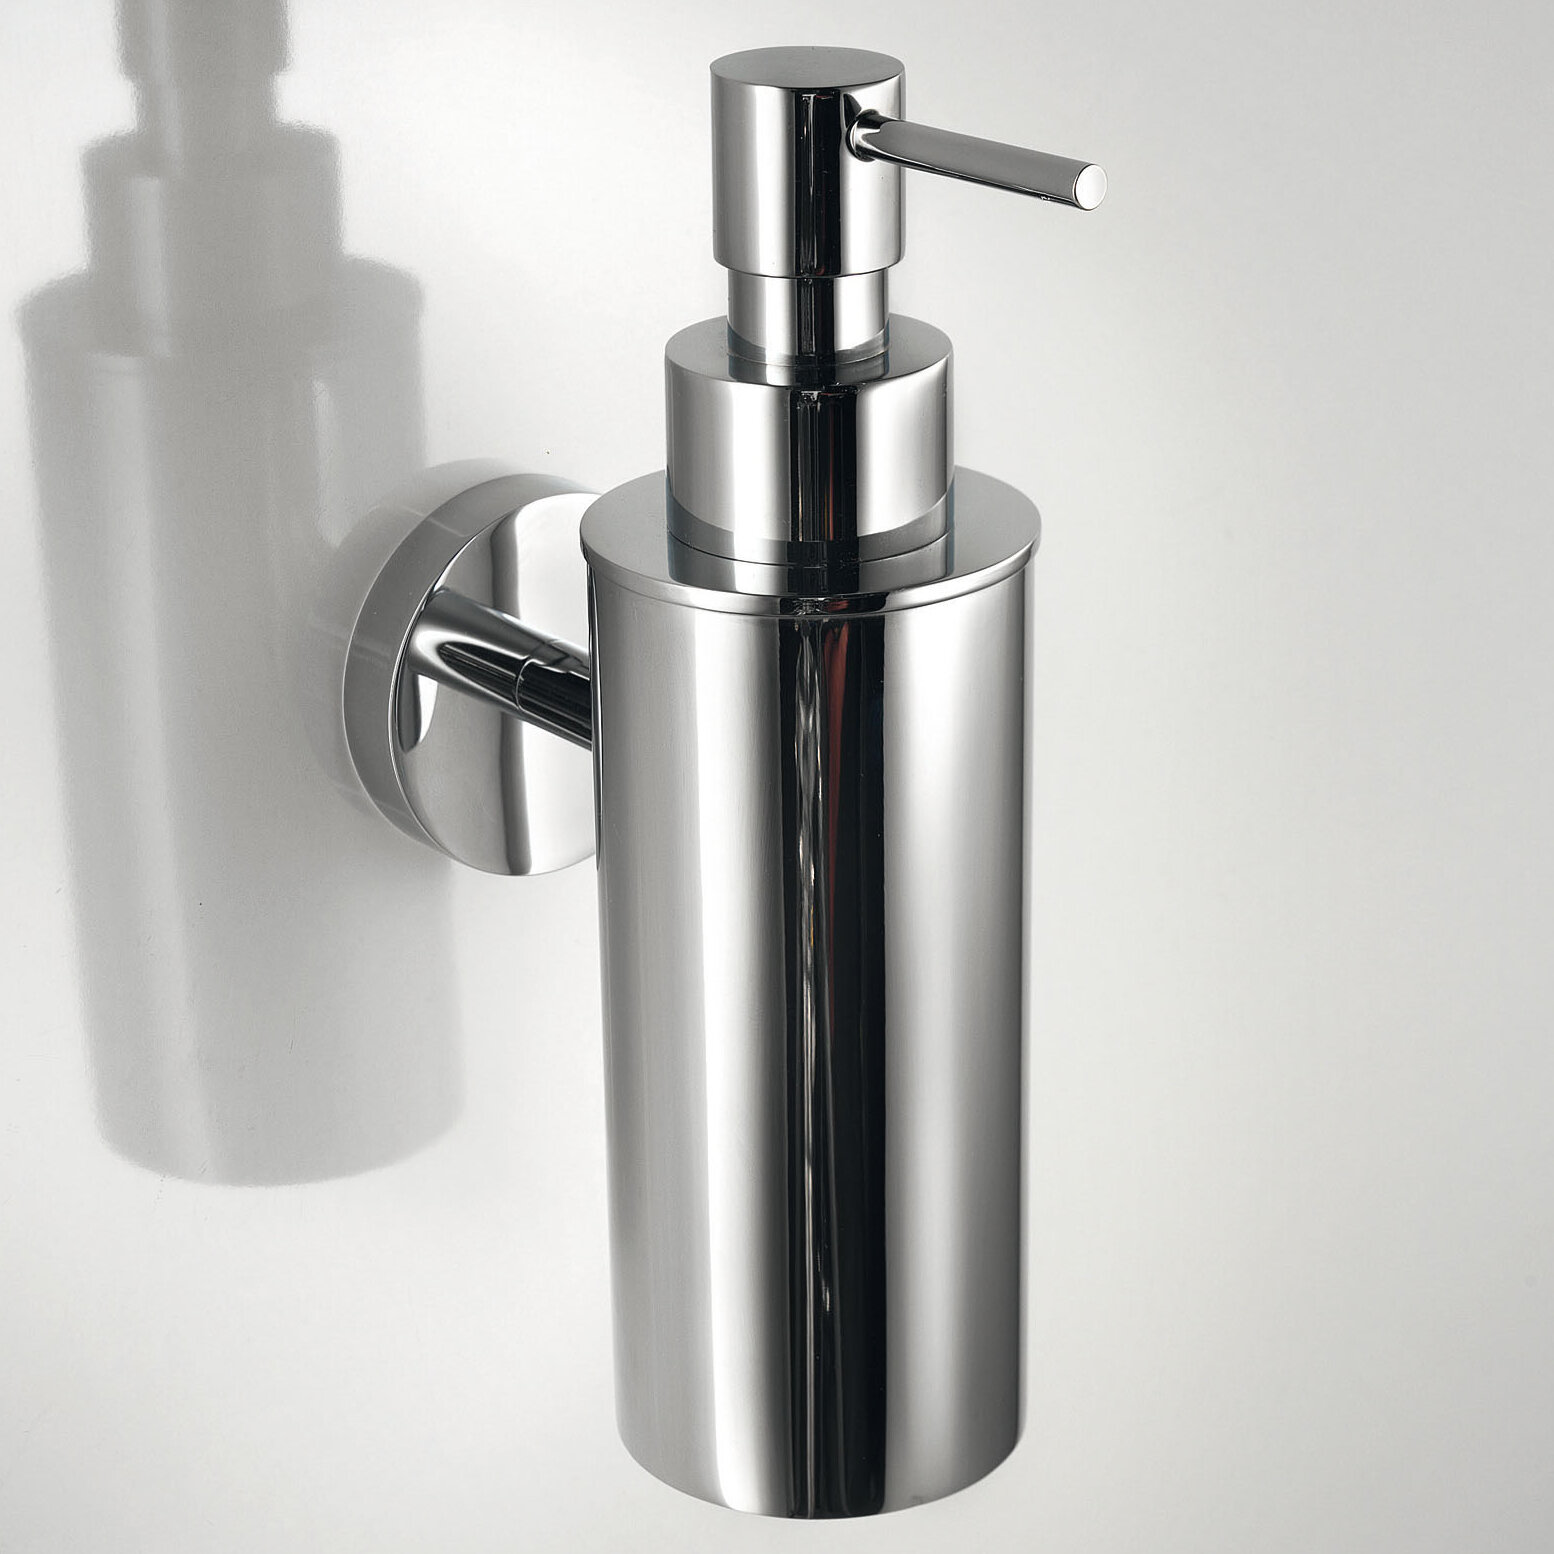 Duemilla Soap Dispenser